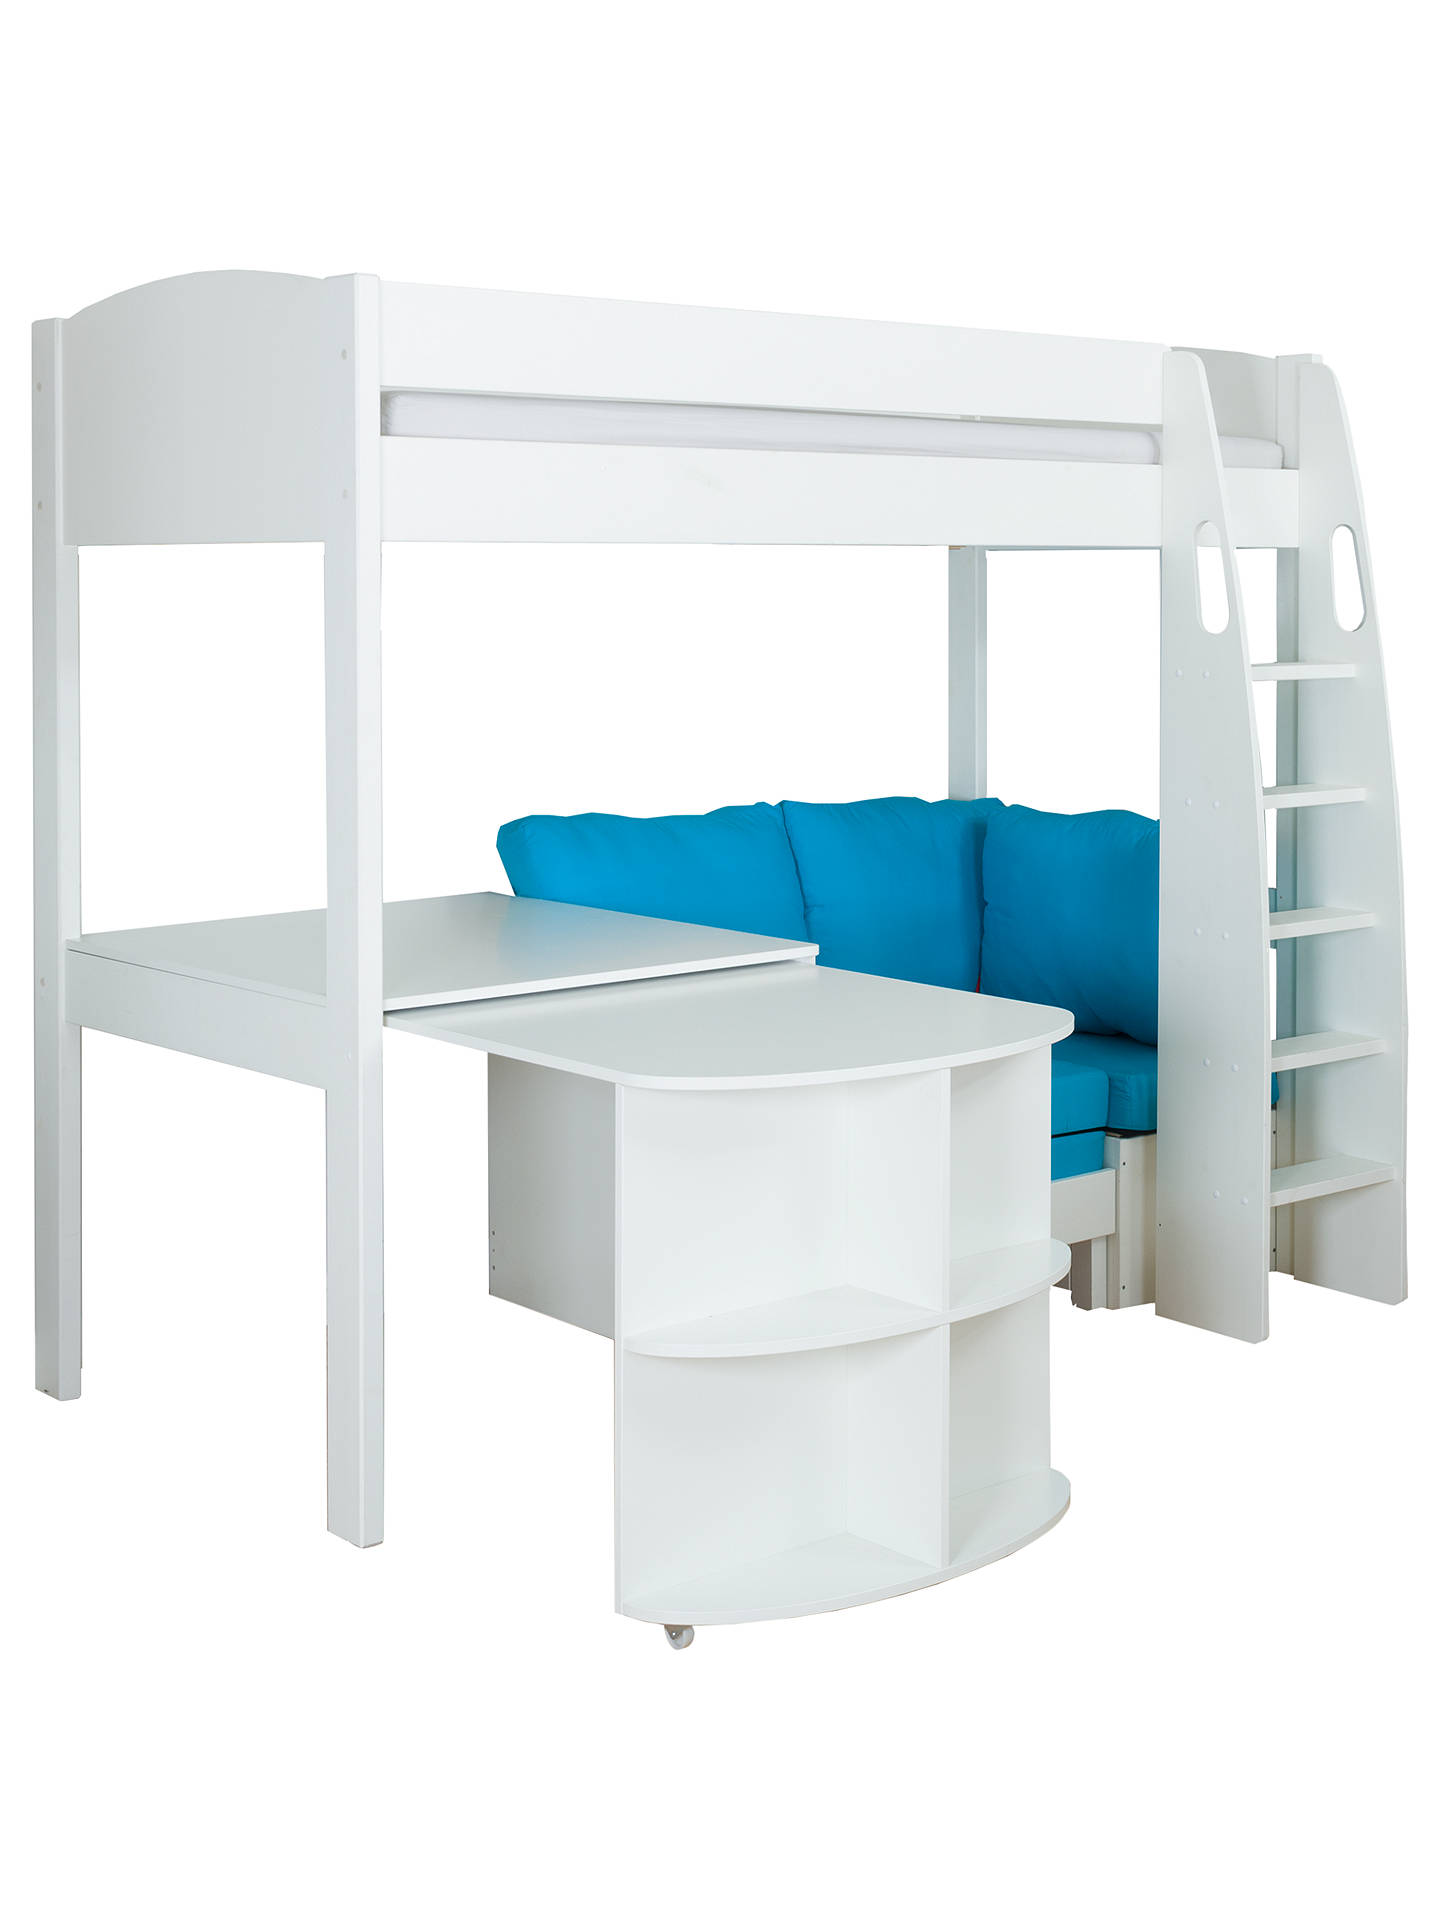 Buy Stompa Uno S Plus High-Sleeper Bed with Pull-Out Desk and Chair Bed, White/Aqua Online at johnlewis.com